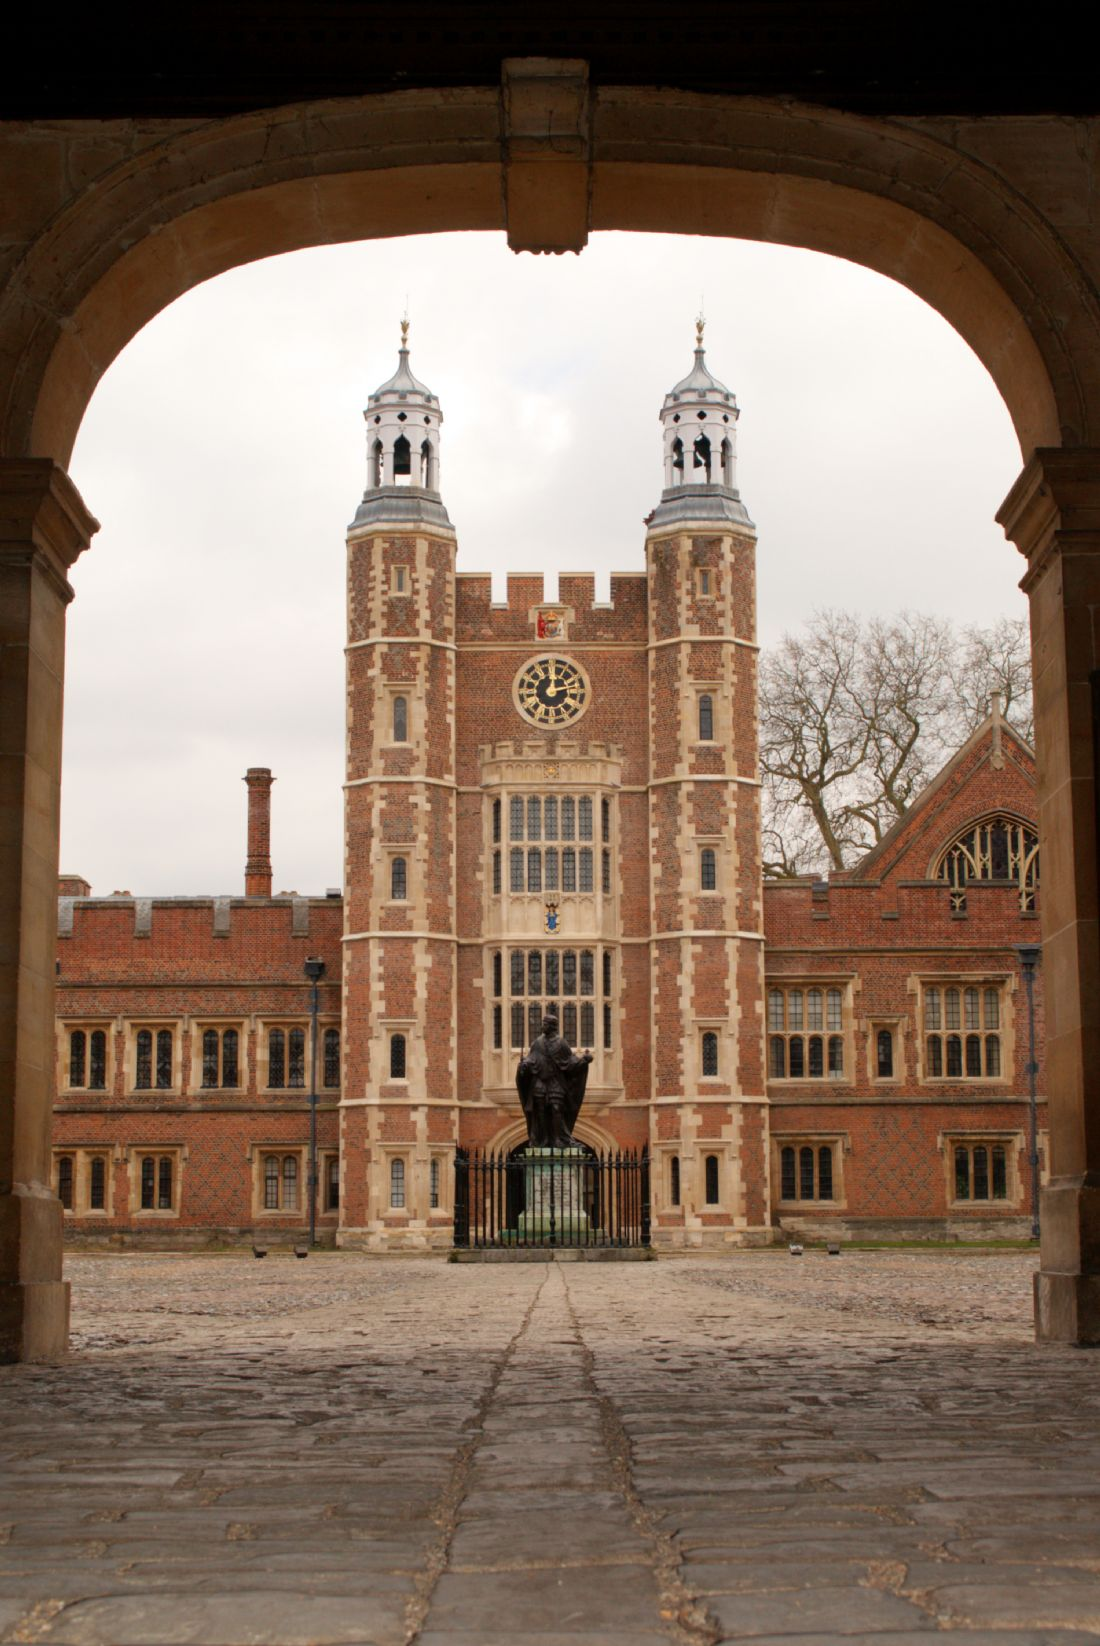 Chris Day | Eton College